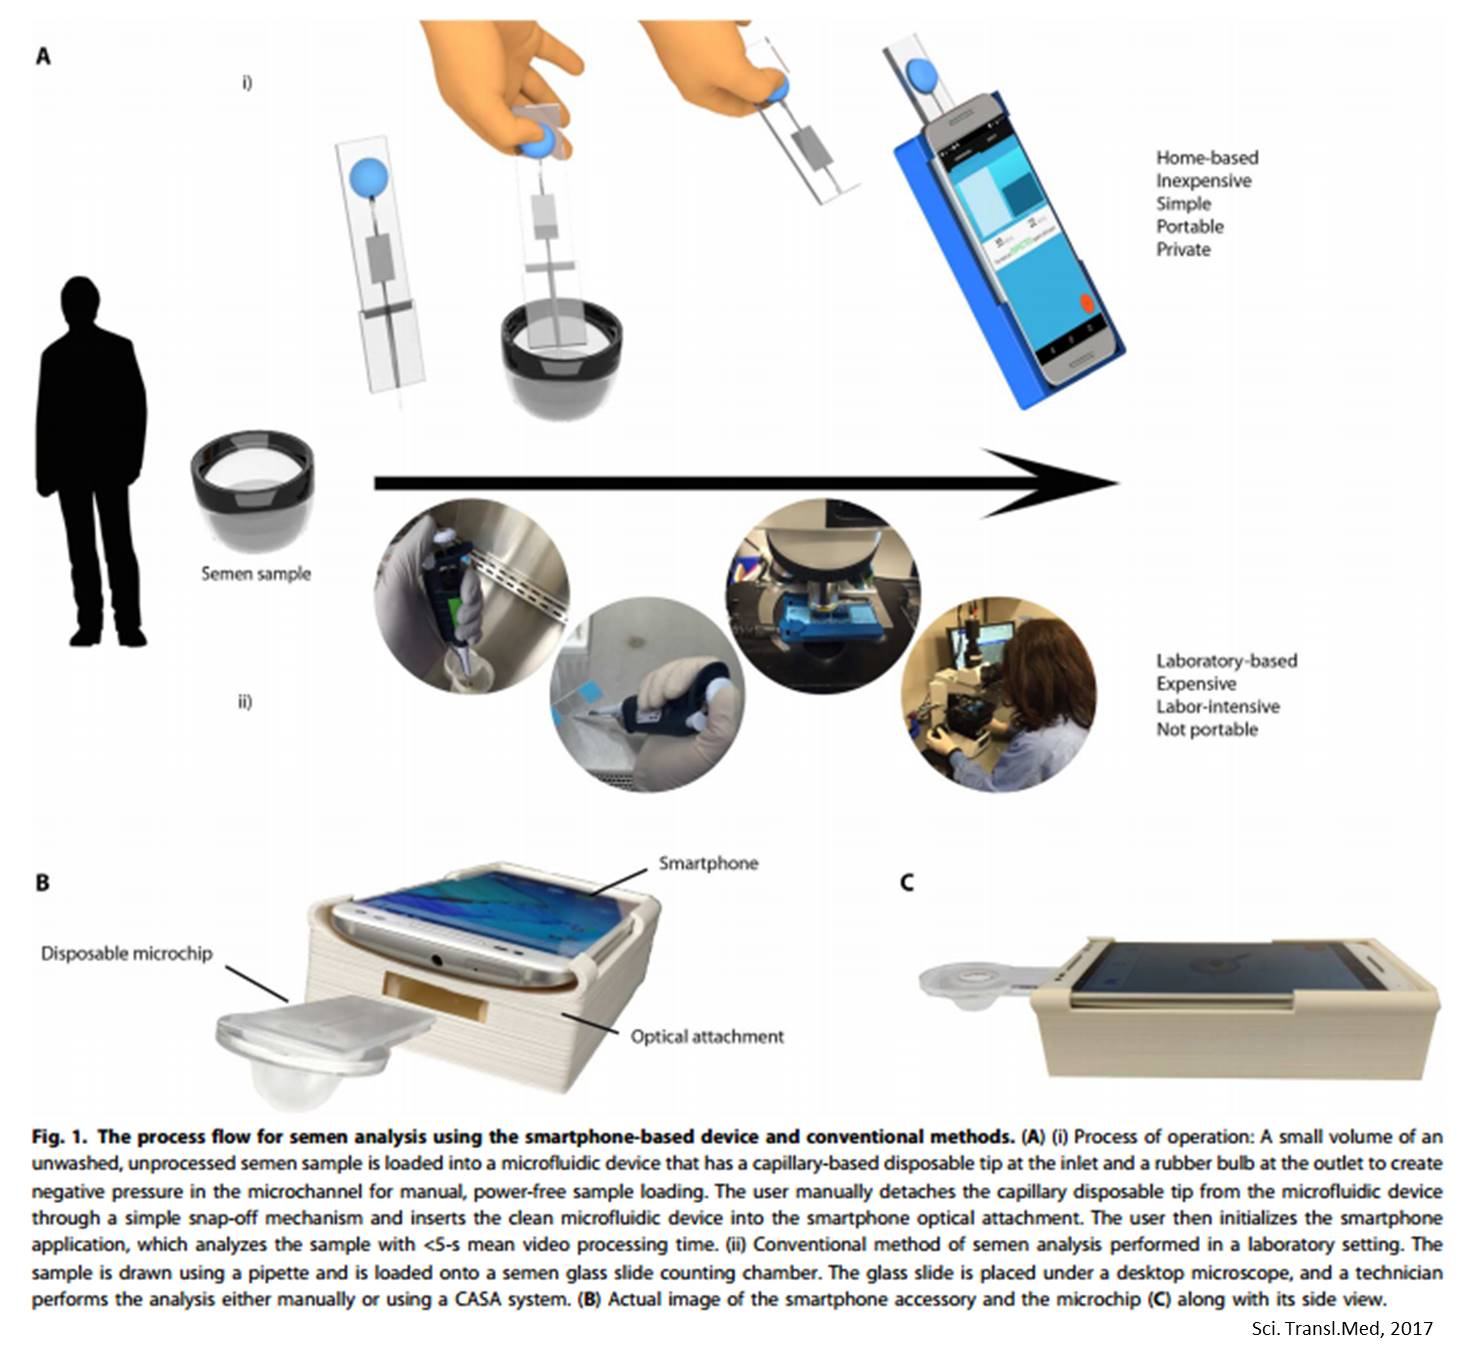 A rapid, automated and inexpensive fertility test for men